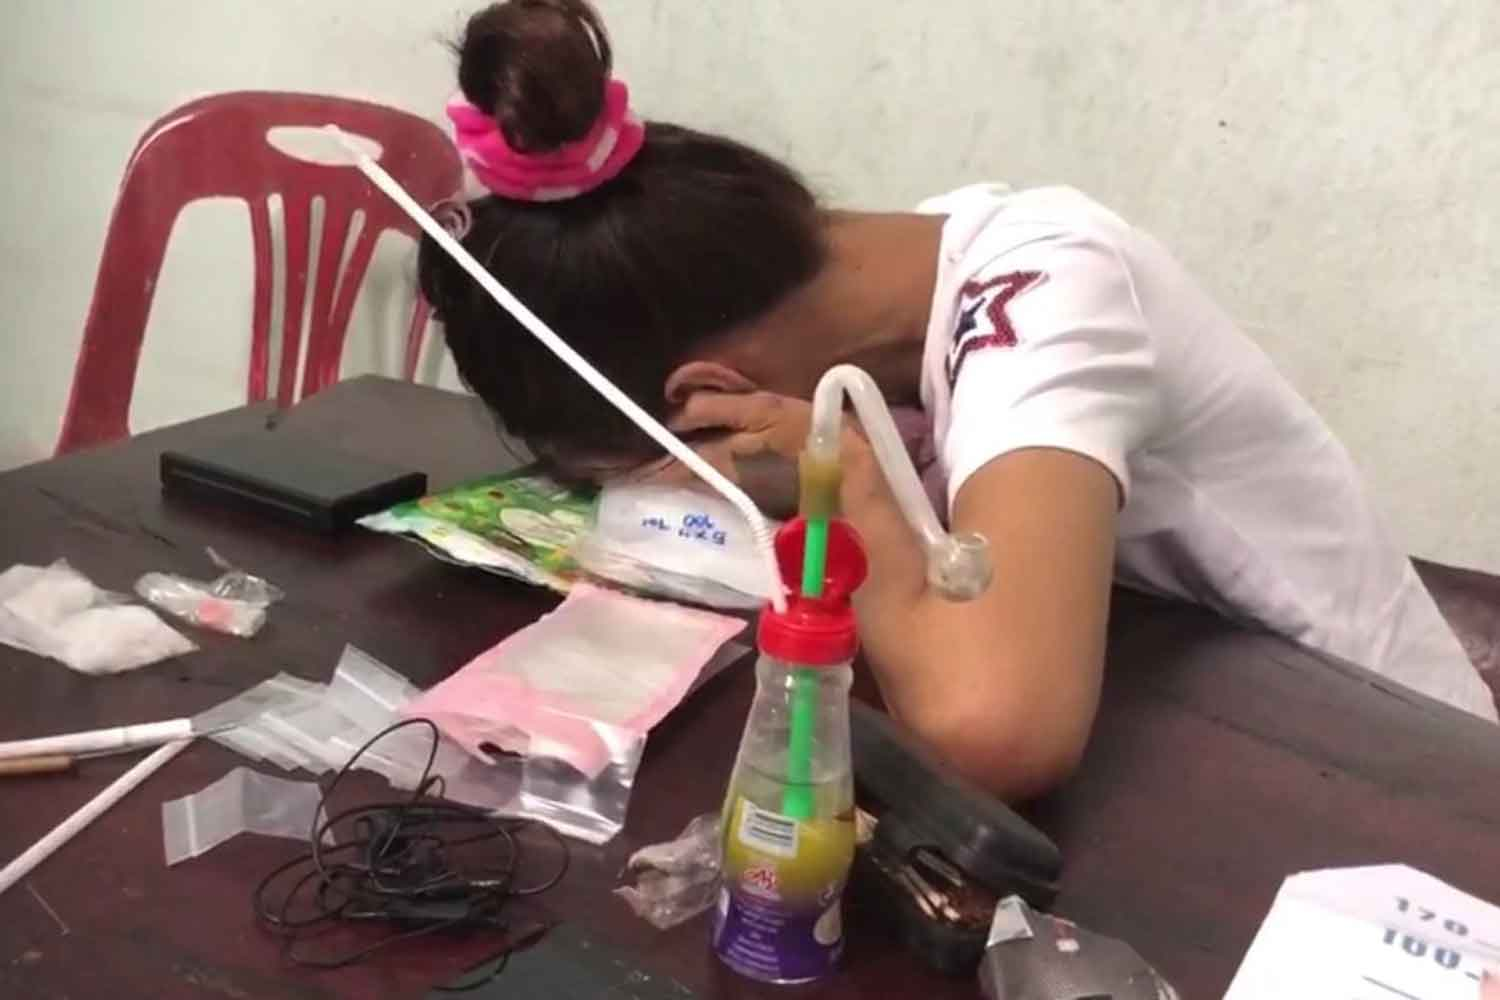 Kittima Ronnakan hides her face after police raided her house in Hat Yai, Songkhla, searching for drugs. Her husband fled as they burst in. (Photo: Assawin Pakkawan)